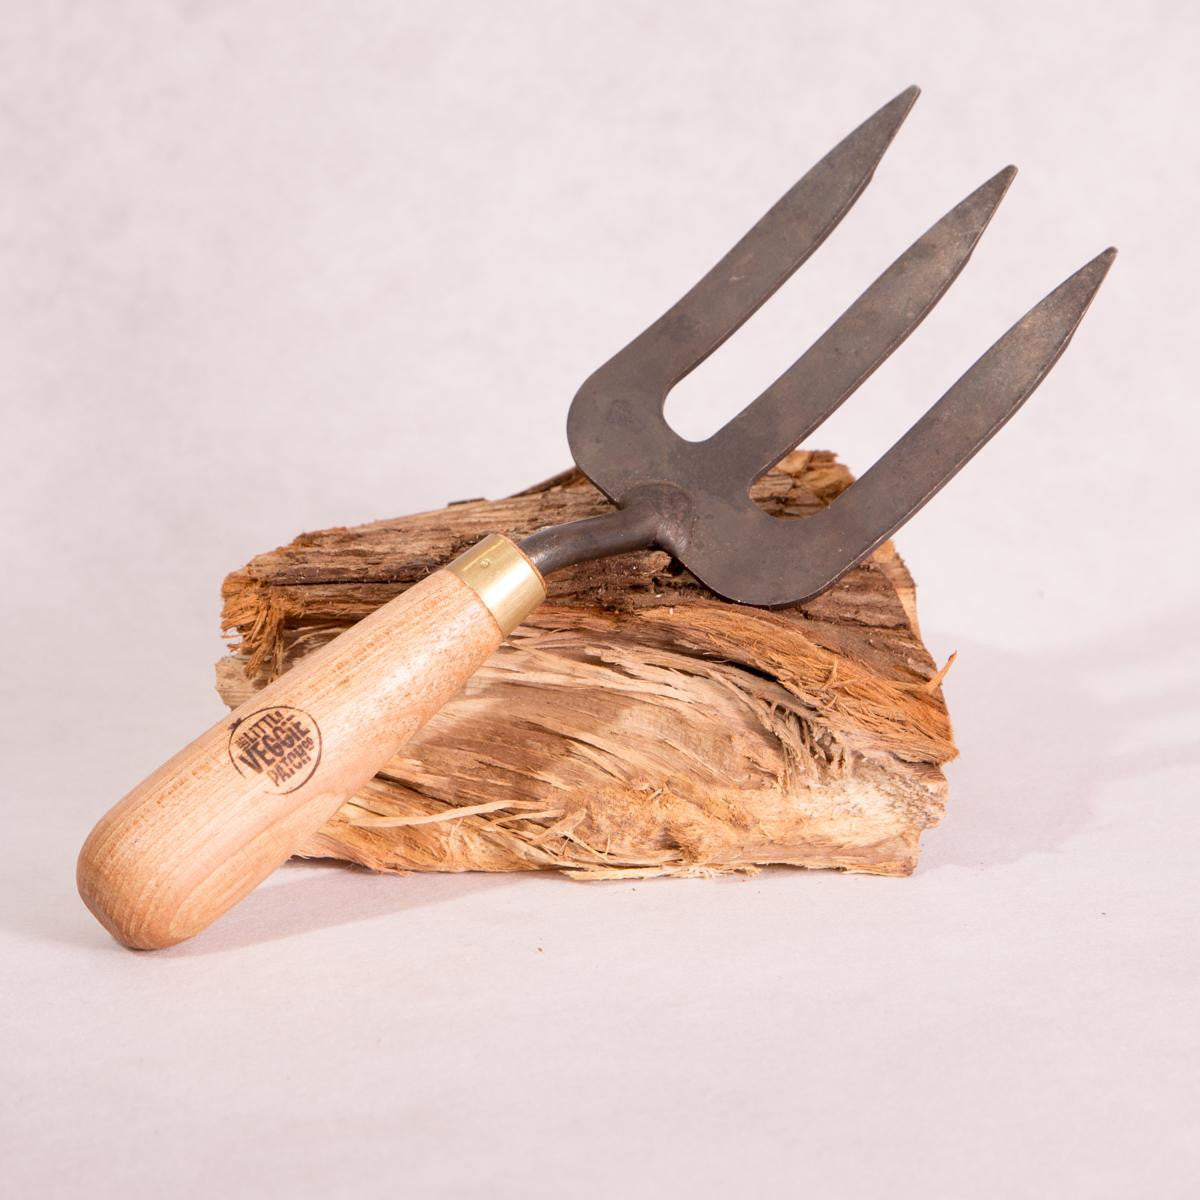 Hand Fork (Digging Tool) - Garden Fork - Throw Some Seeds - Australian gardening gifts and eco products online!